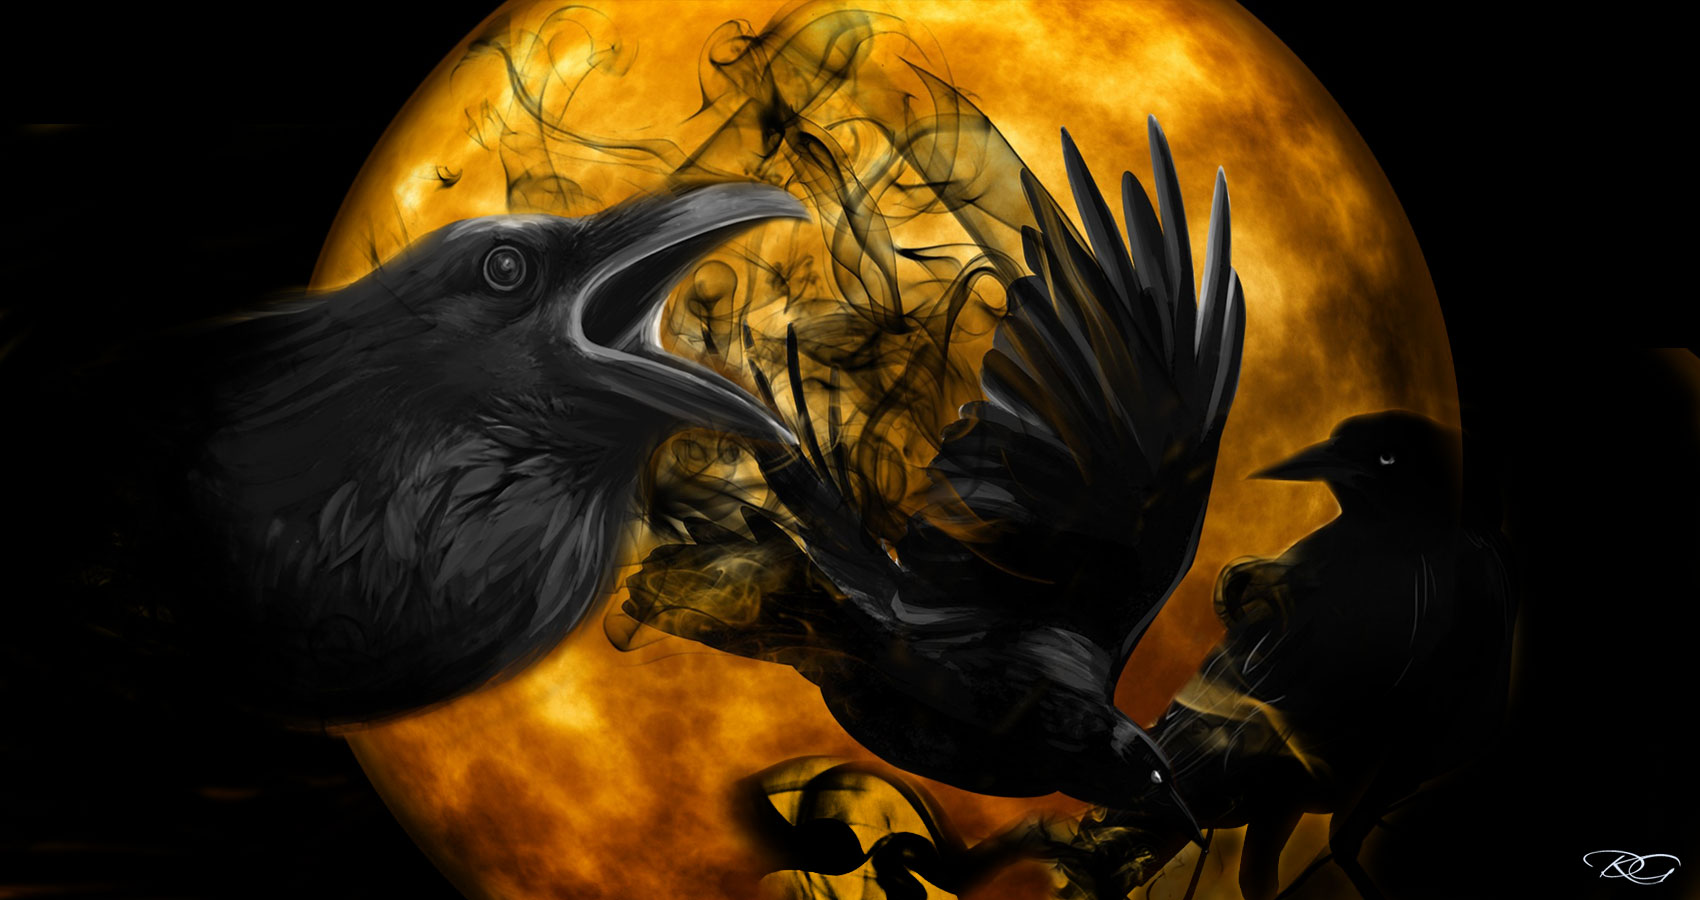 War Of The Crows written by TM Arko at Spillwords.com